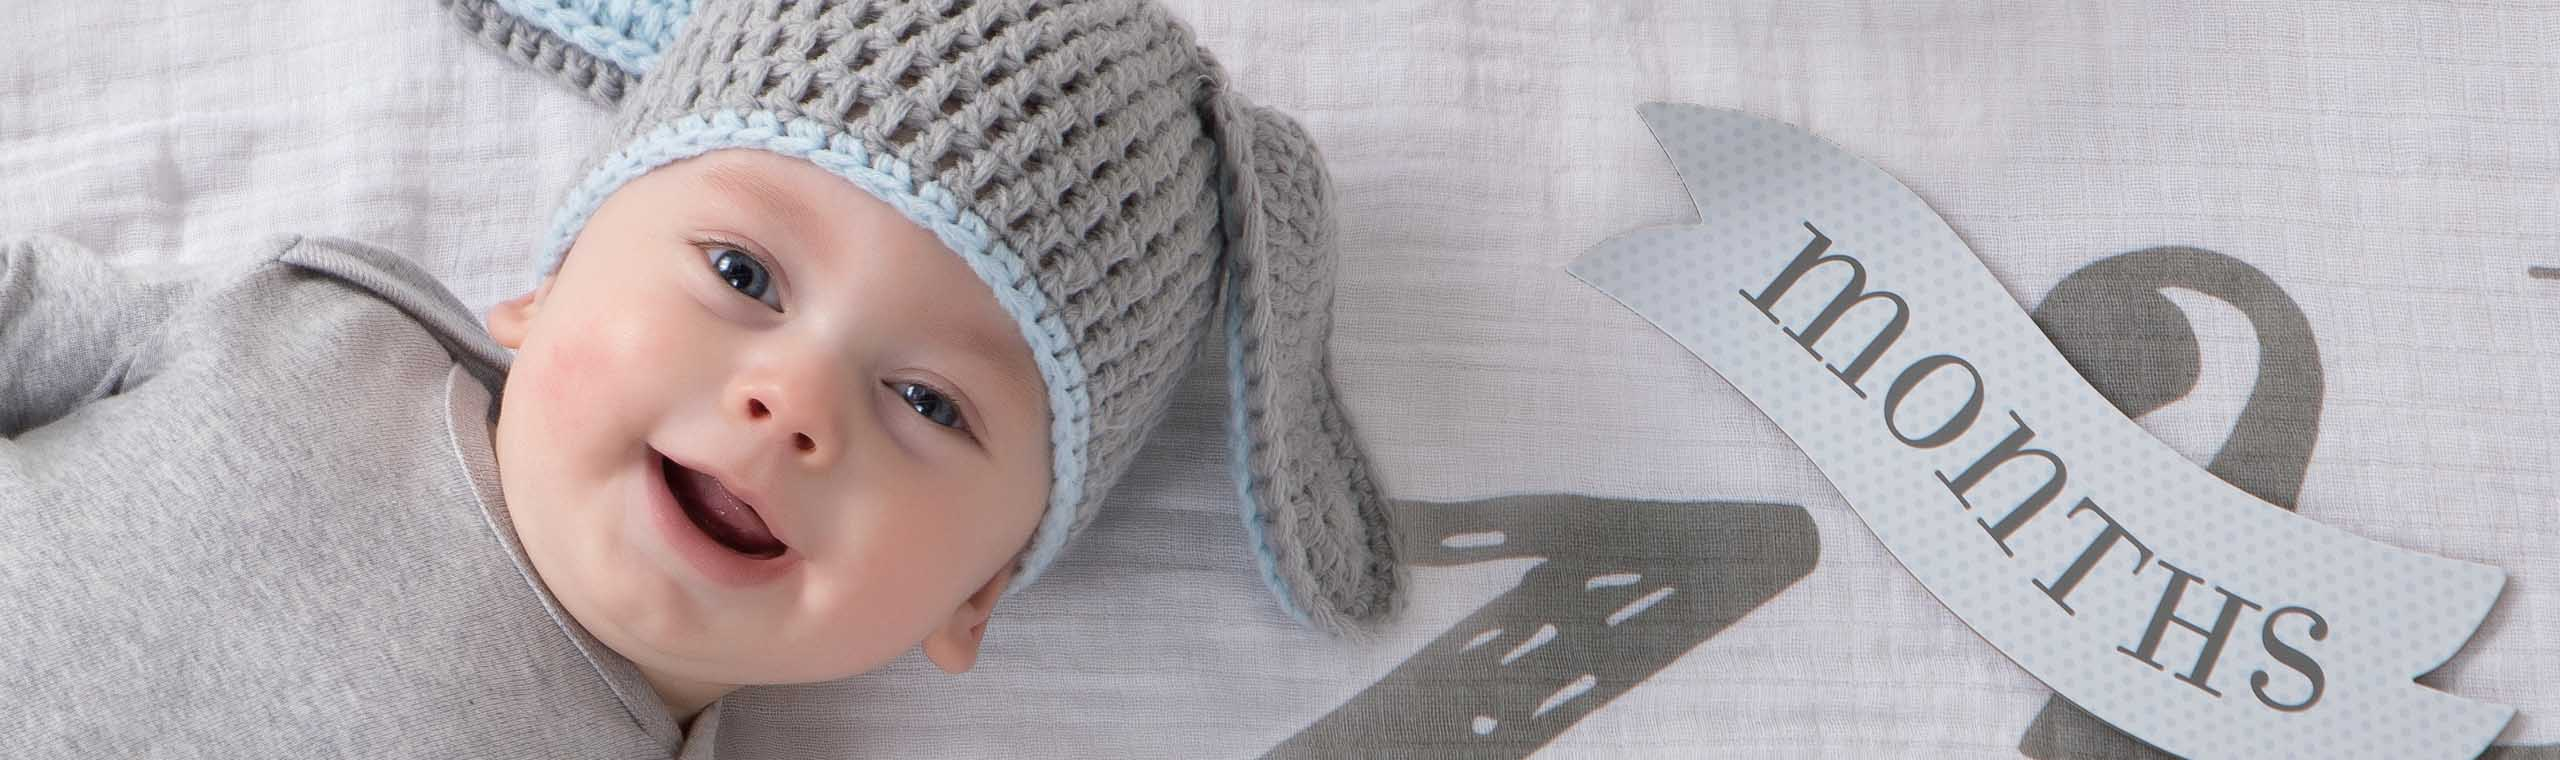 Baby lying on soft white and blue blanket wearing a knit gray and blue hat